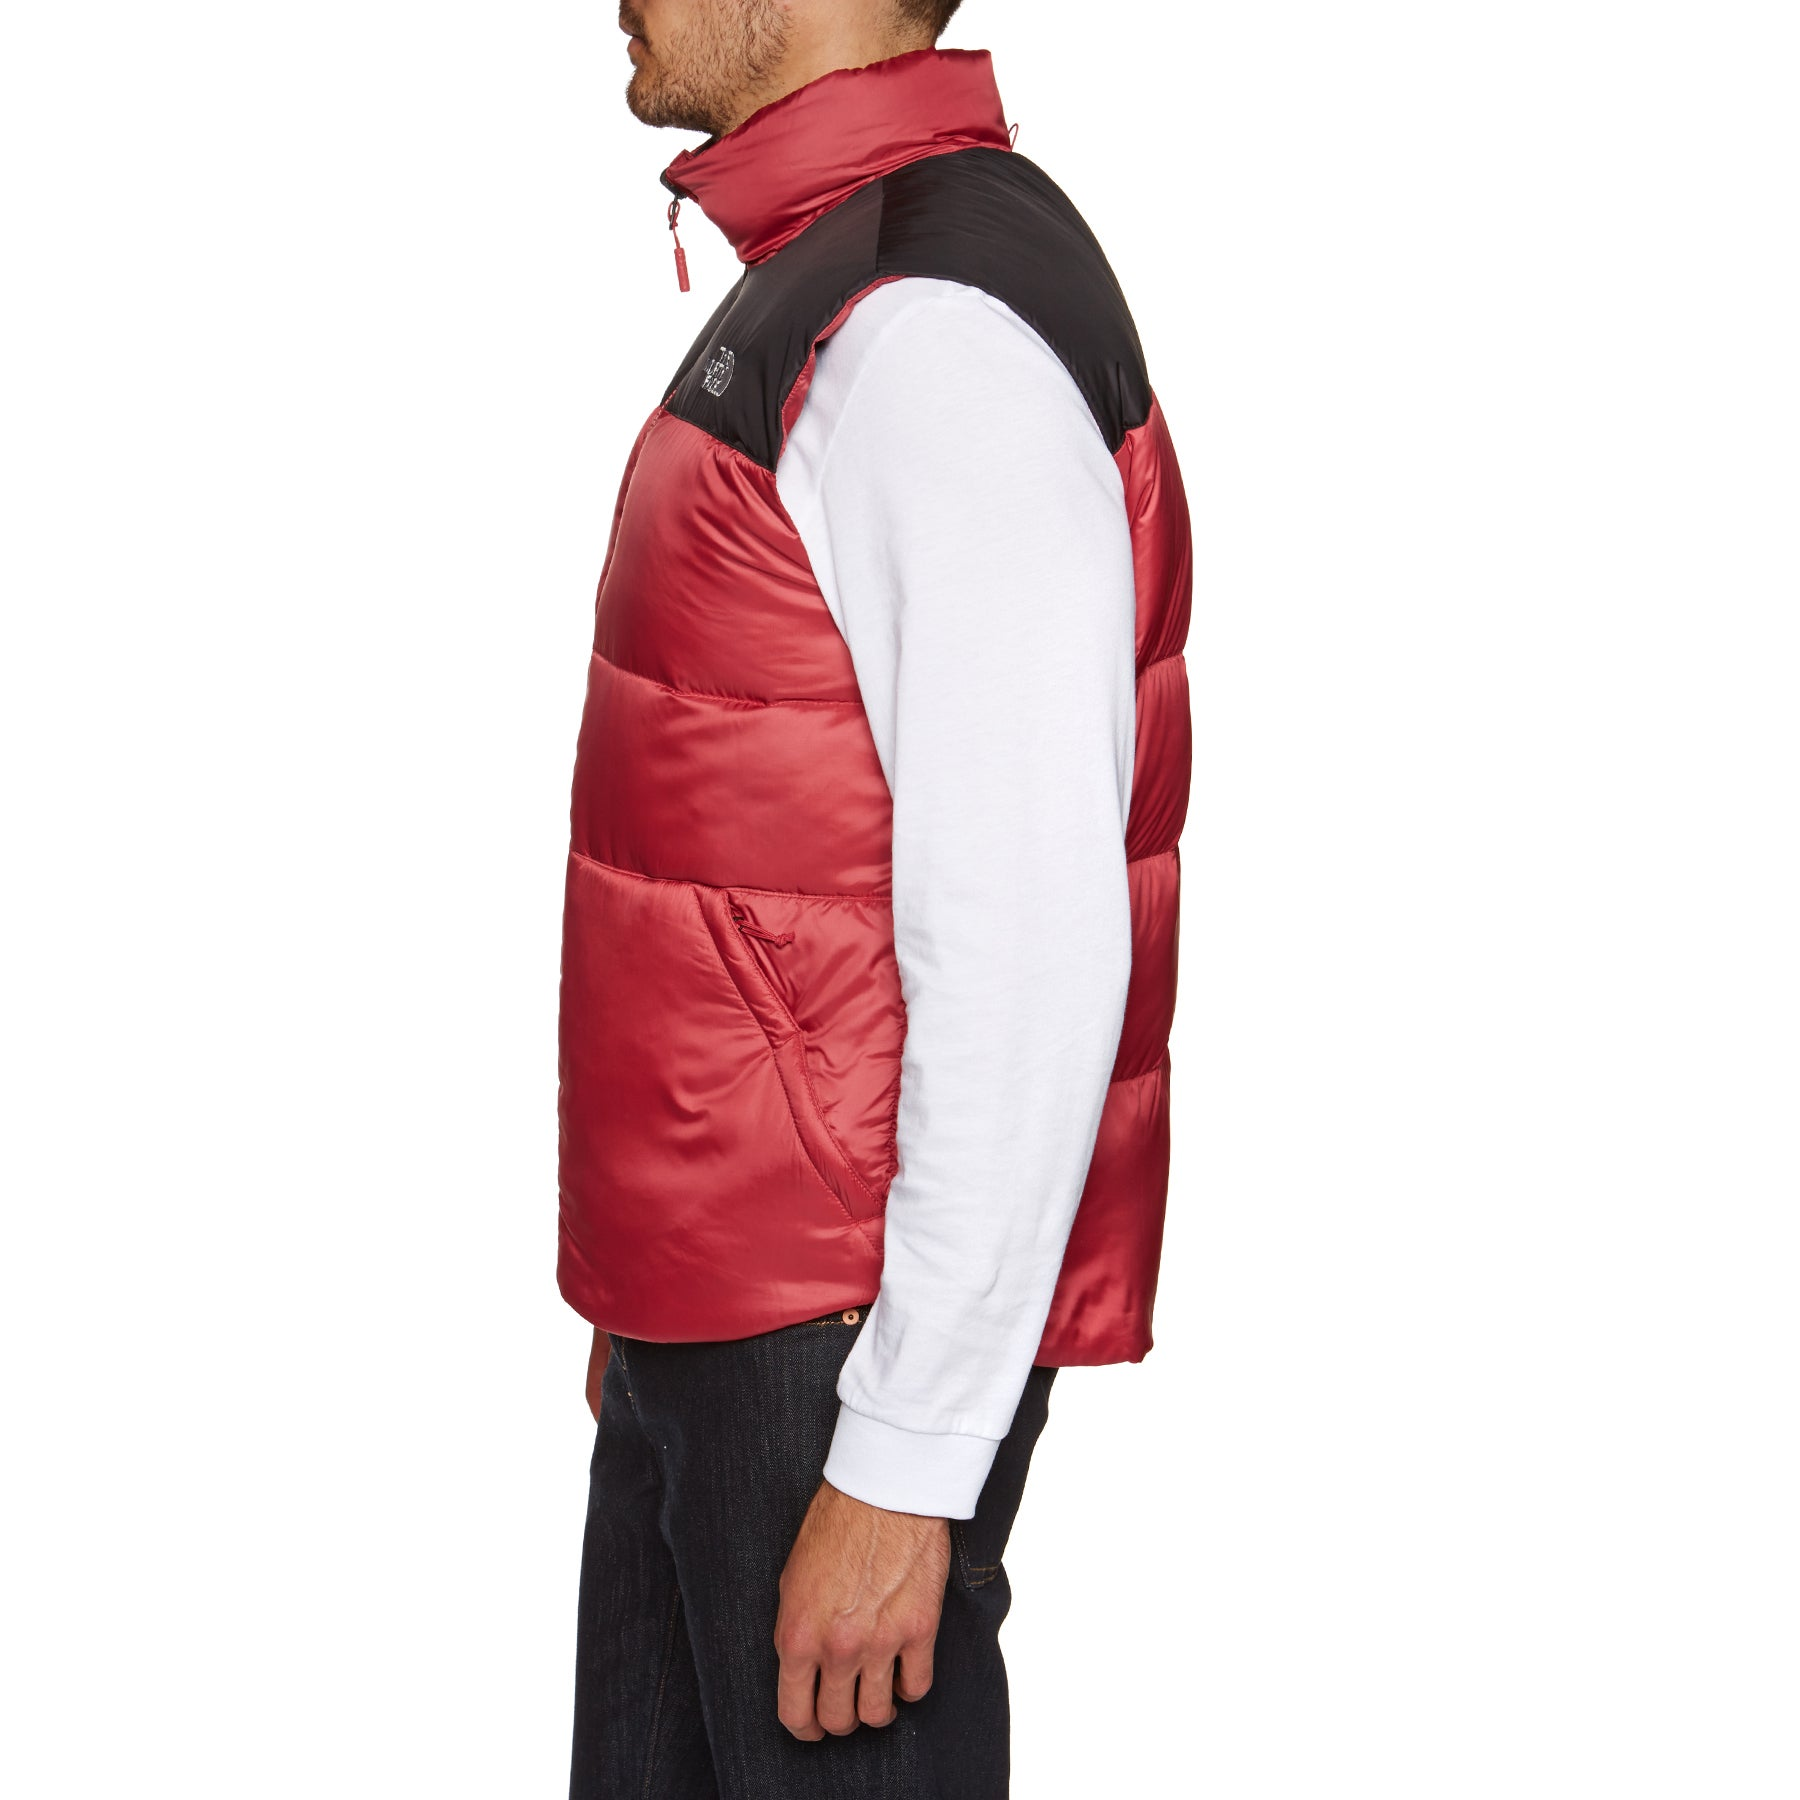 The North Face Nuptse Iii Jacket Body Warmer Rage Red Tnf Black All Sizes